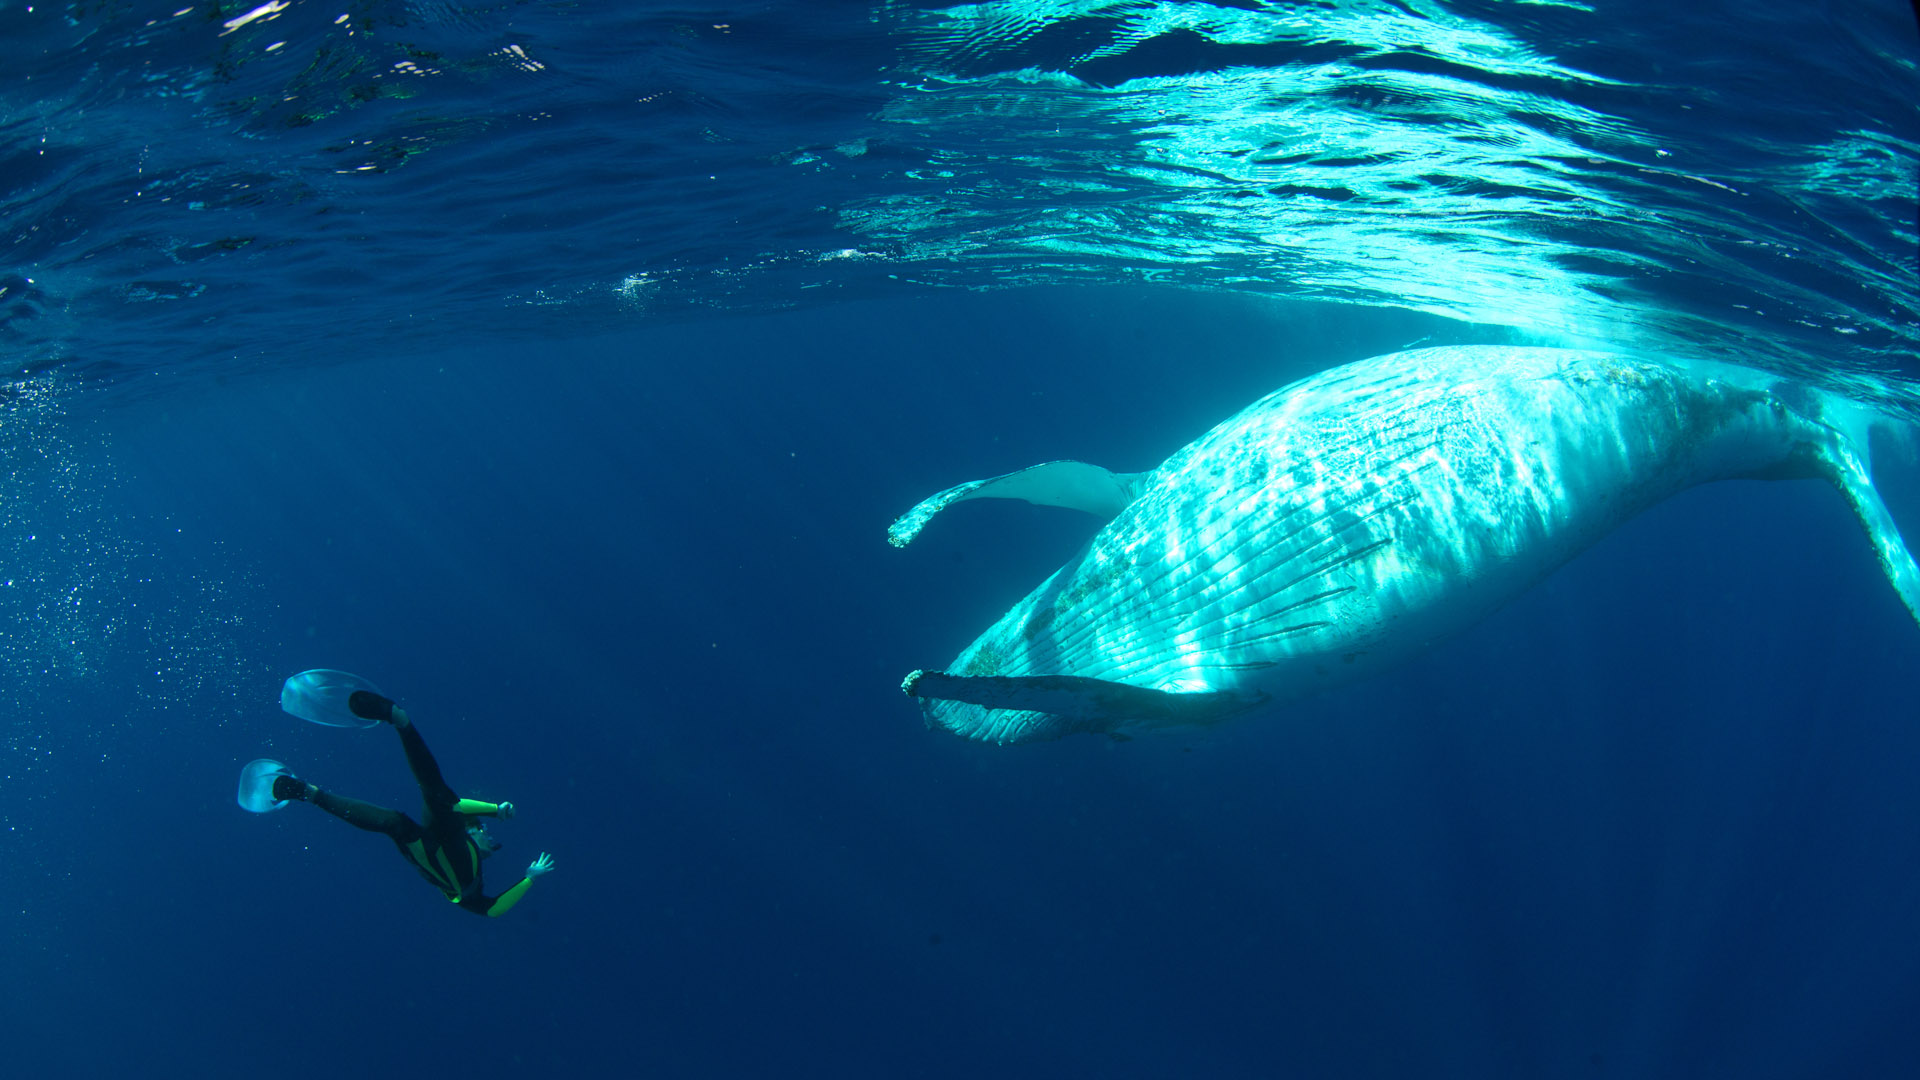 Swimming with humpbacks in Reunion Island - Patrick Dykstra